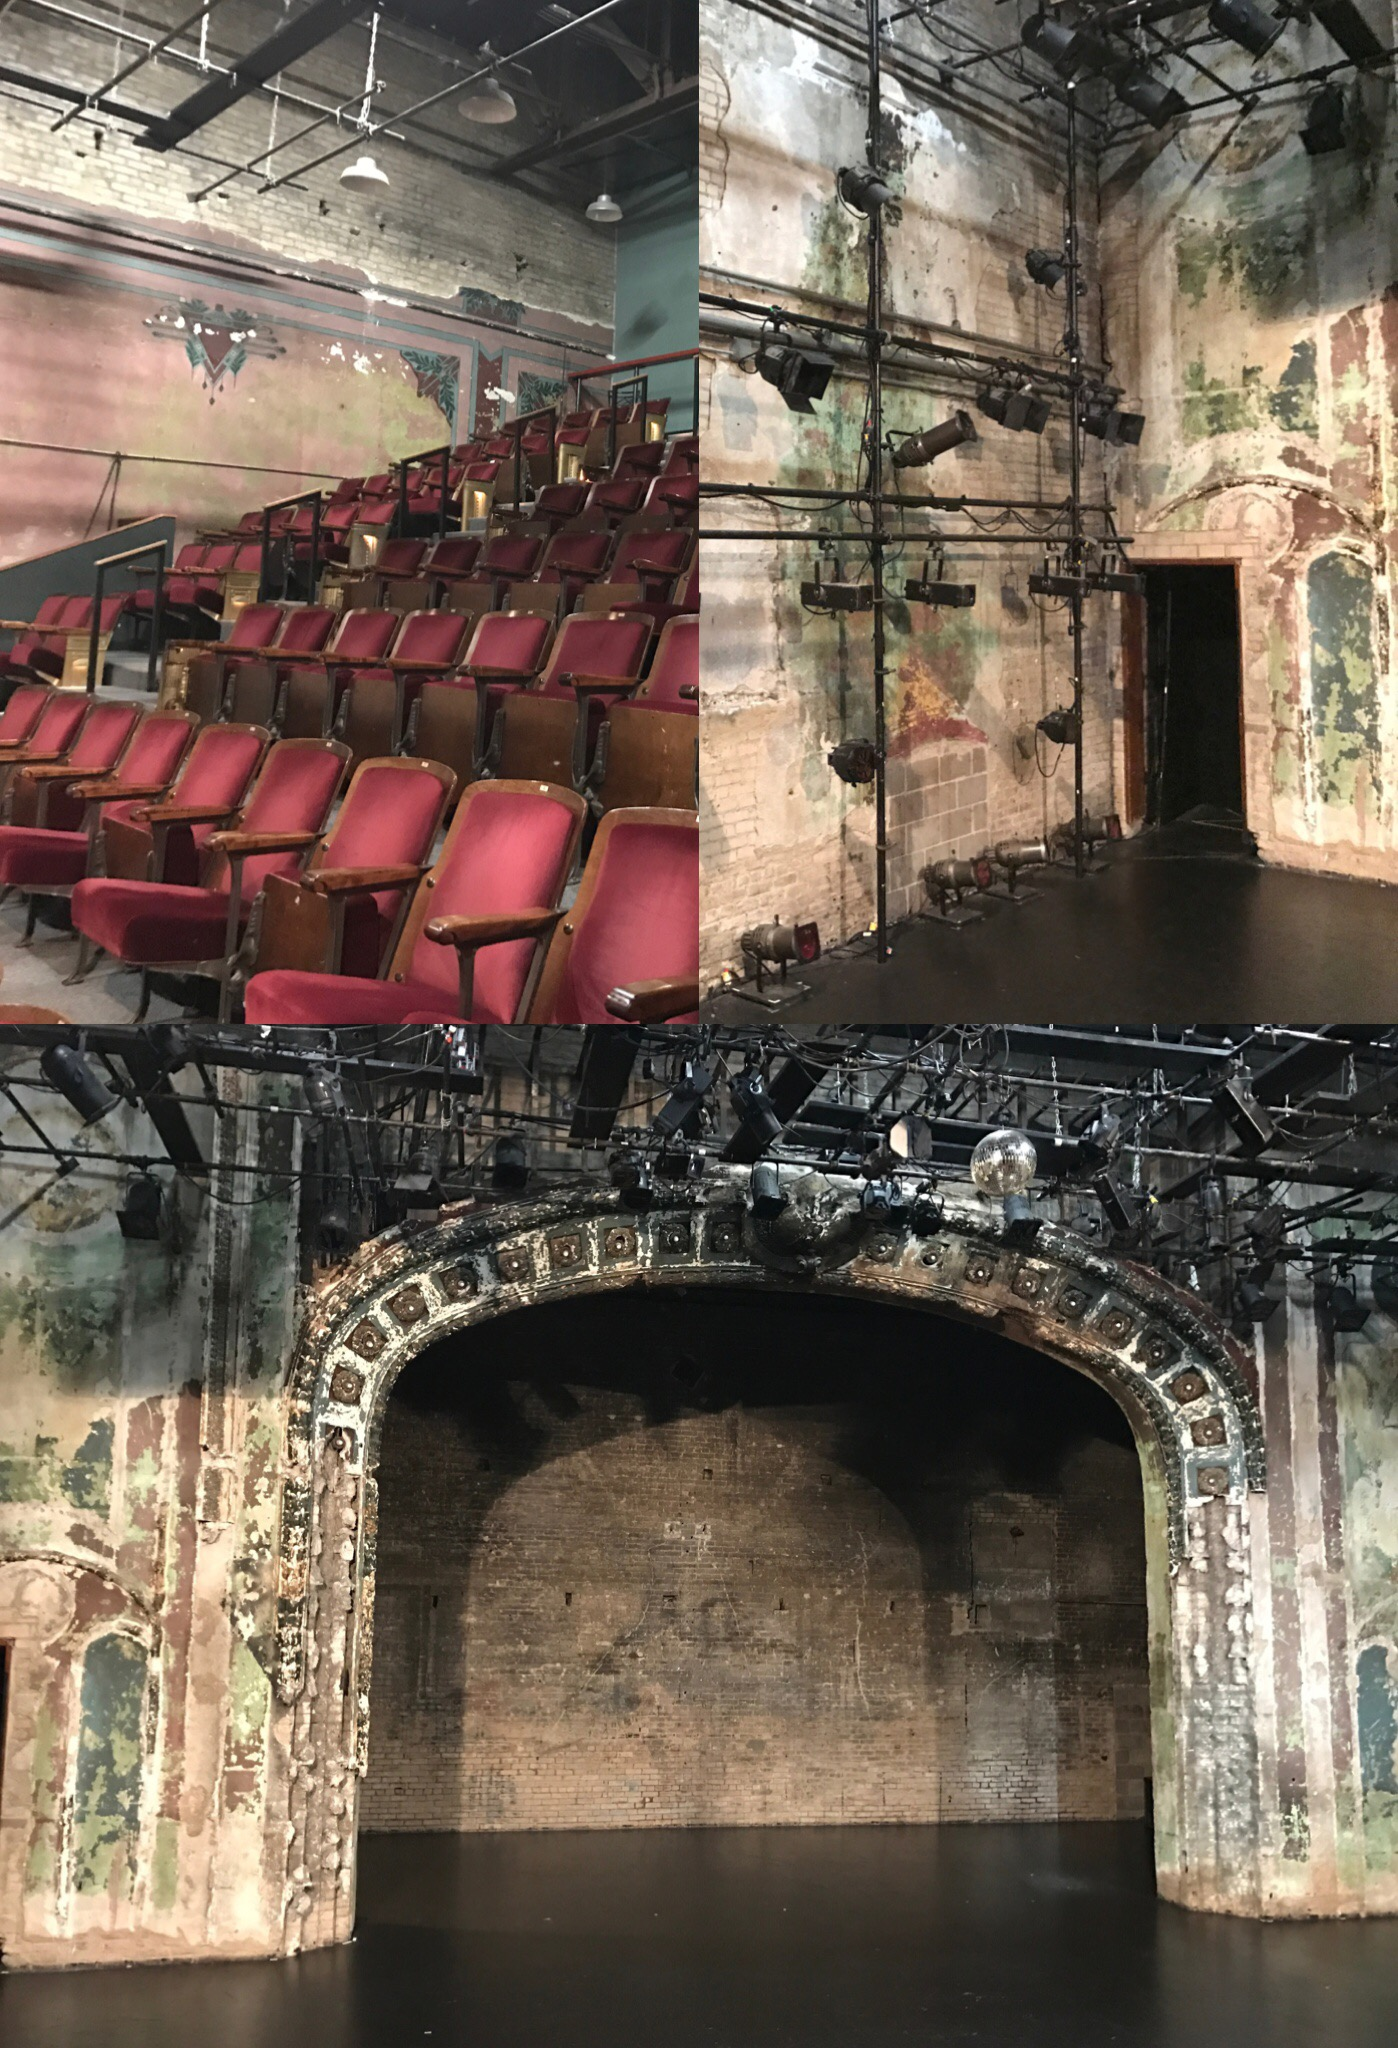 Images of the Southern Theatre with original brick work from the 1920s and red velvet chairs